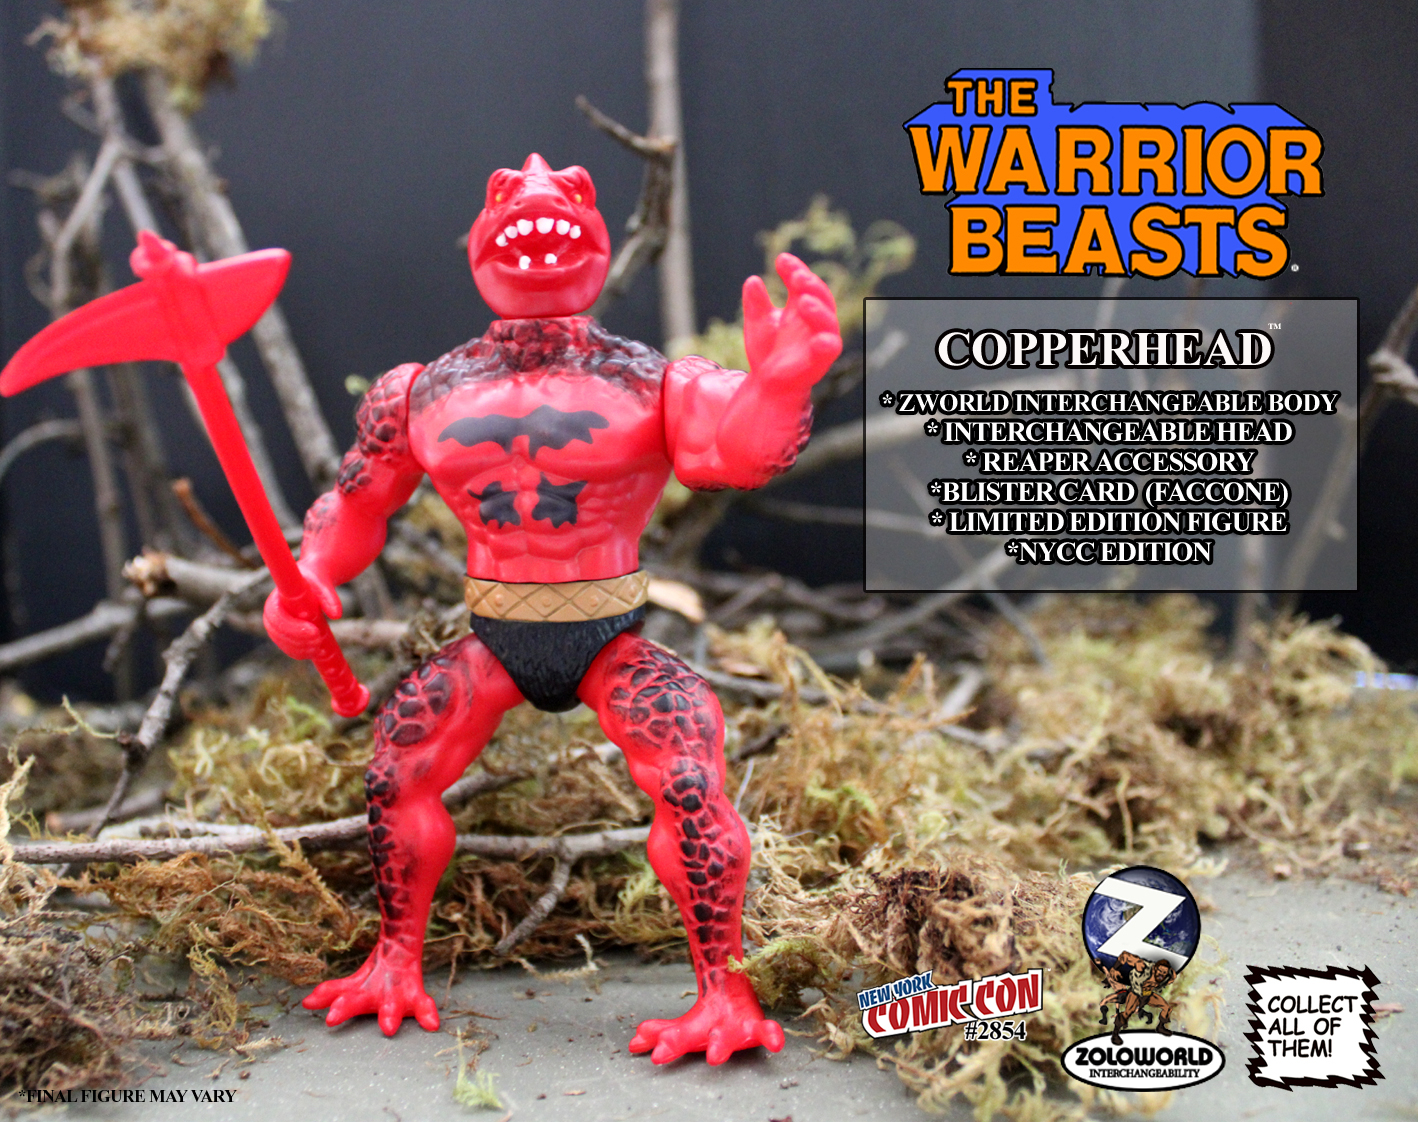 The Warrior Beasts: COPPERHEAD by Zoloworld